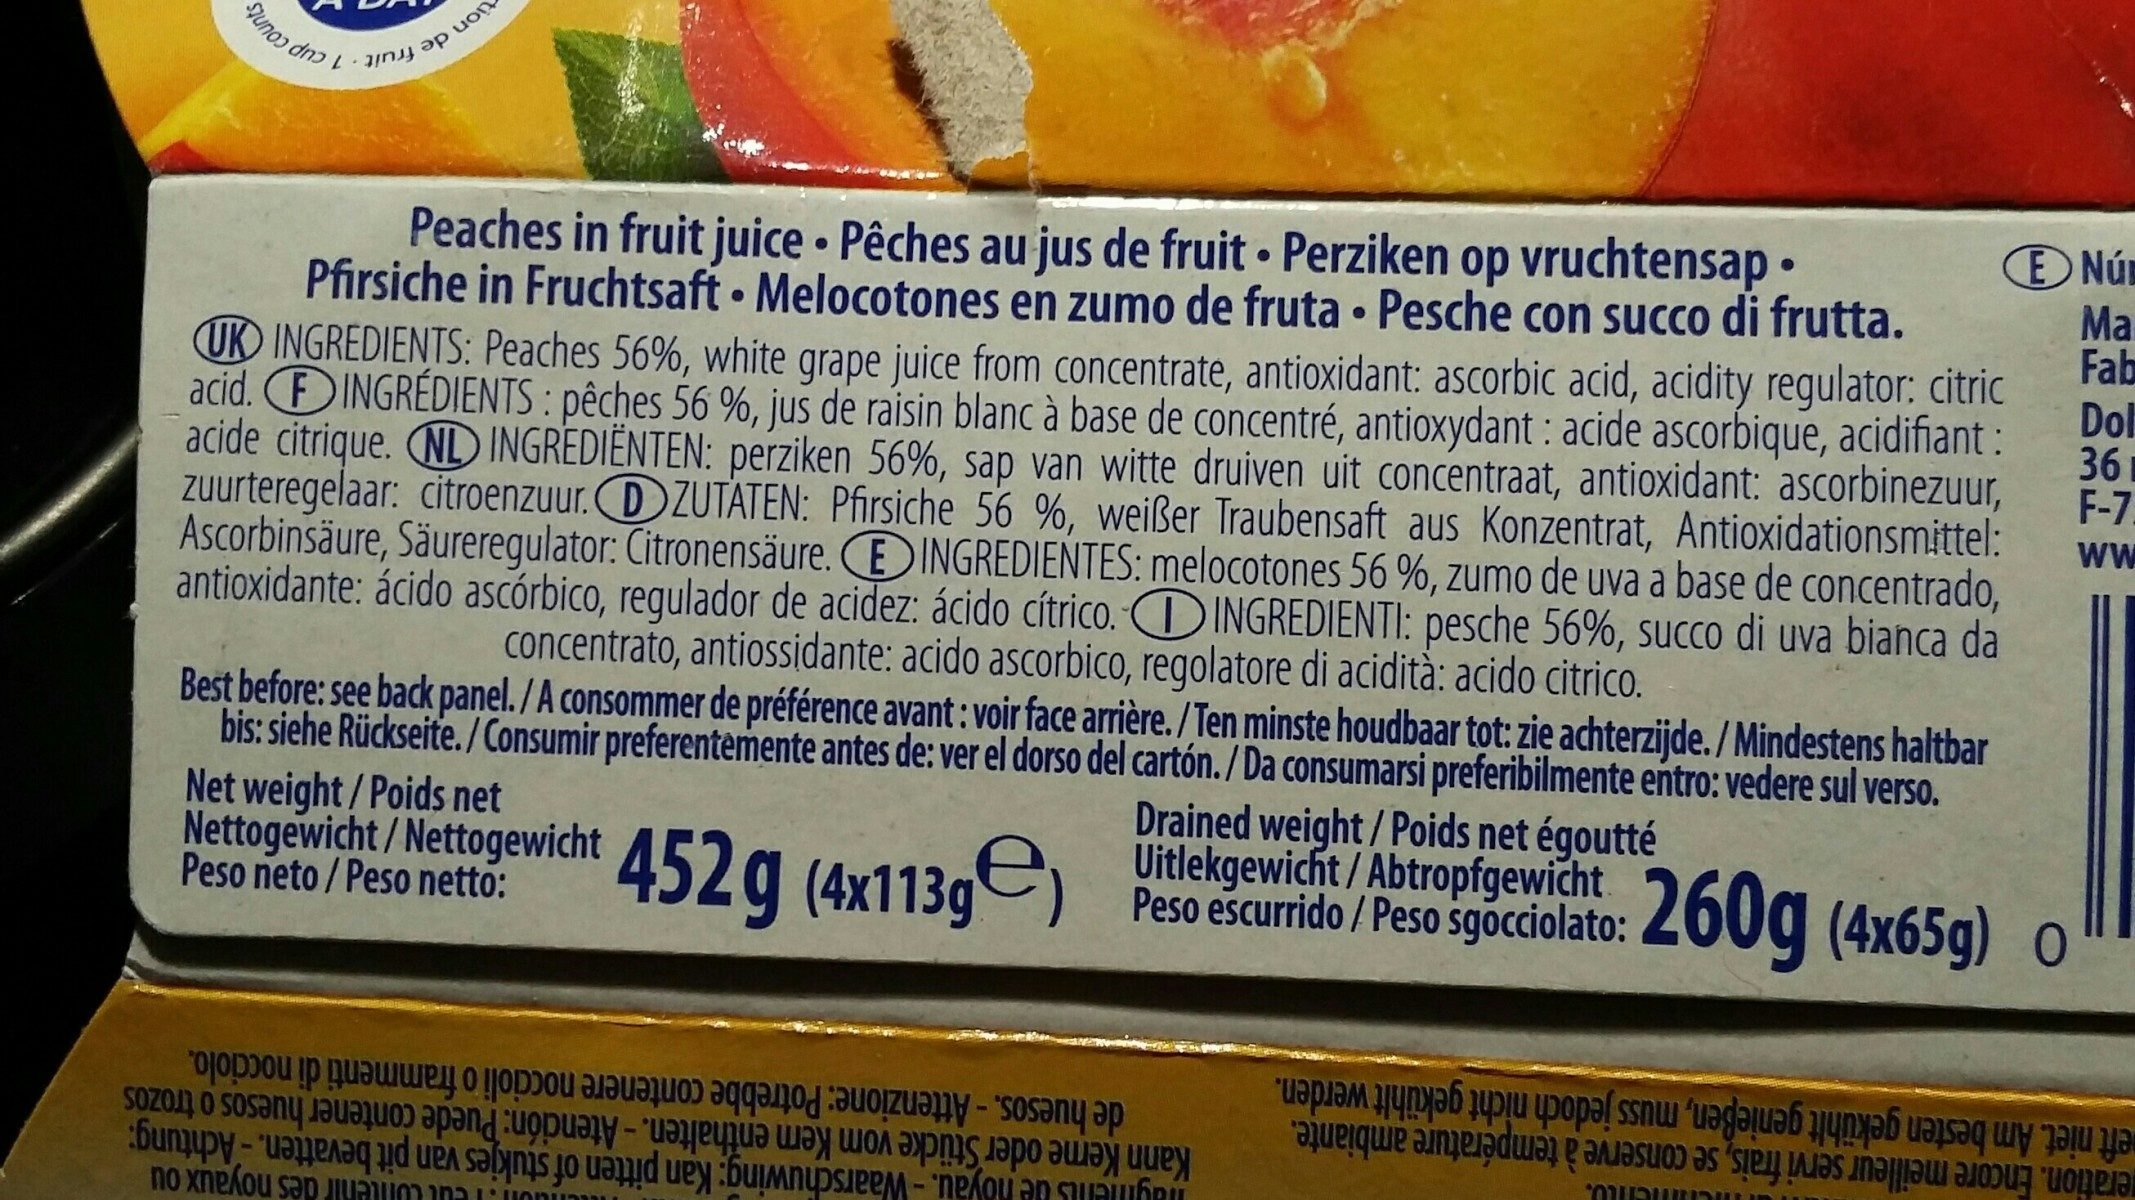 Dole Fruit In Juice, Peaches Pfirsich - Ingrédients